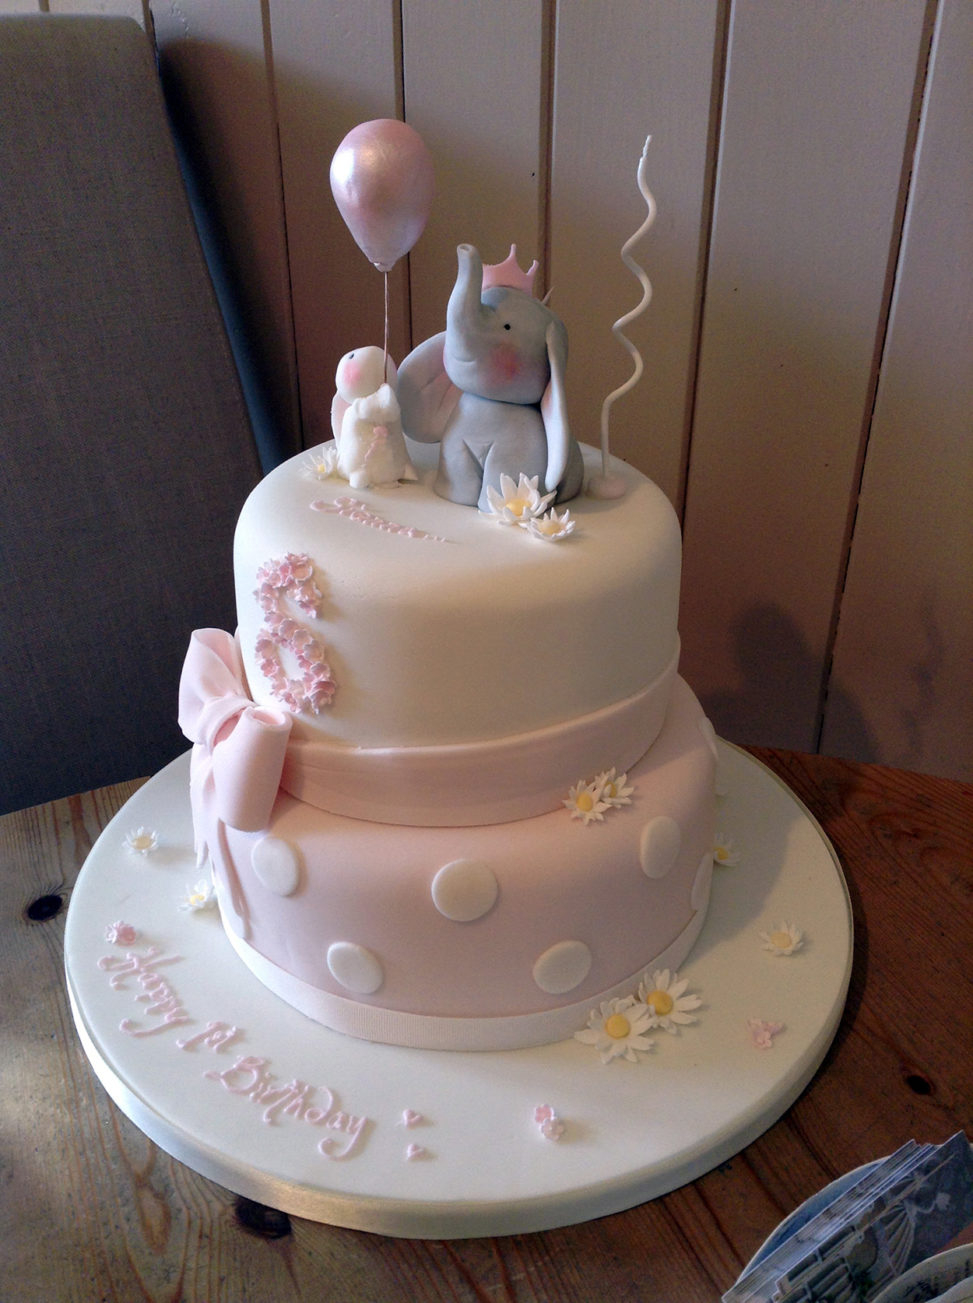 Elephant Birthday Cakes Ba Elephant Birthday Cake The Wedding Cake